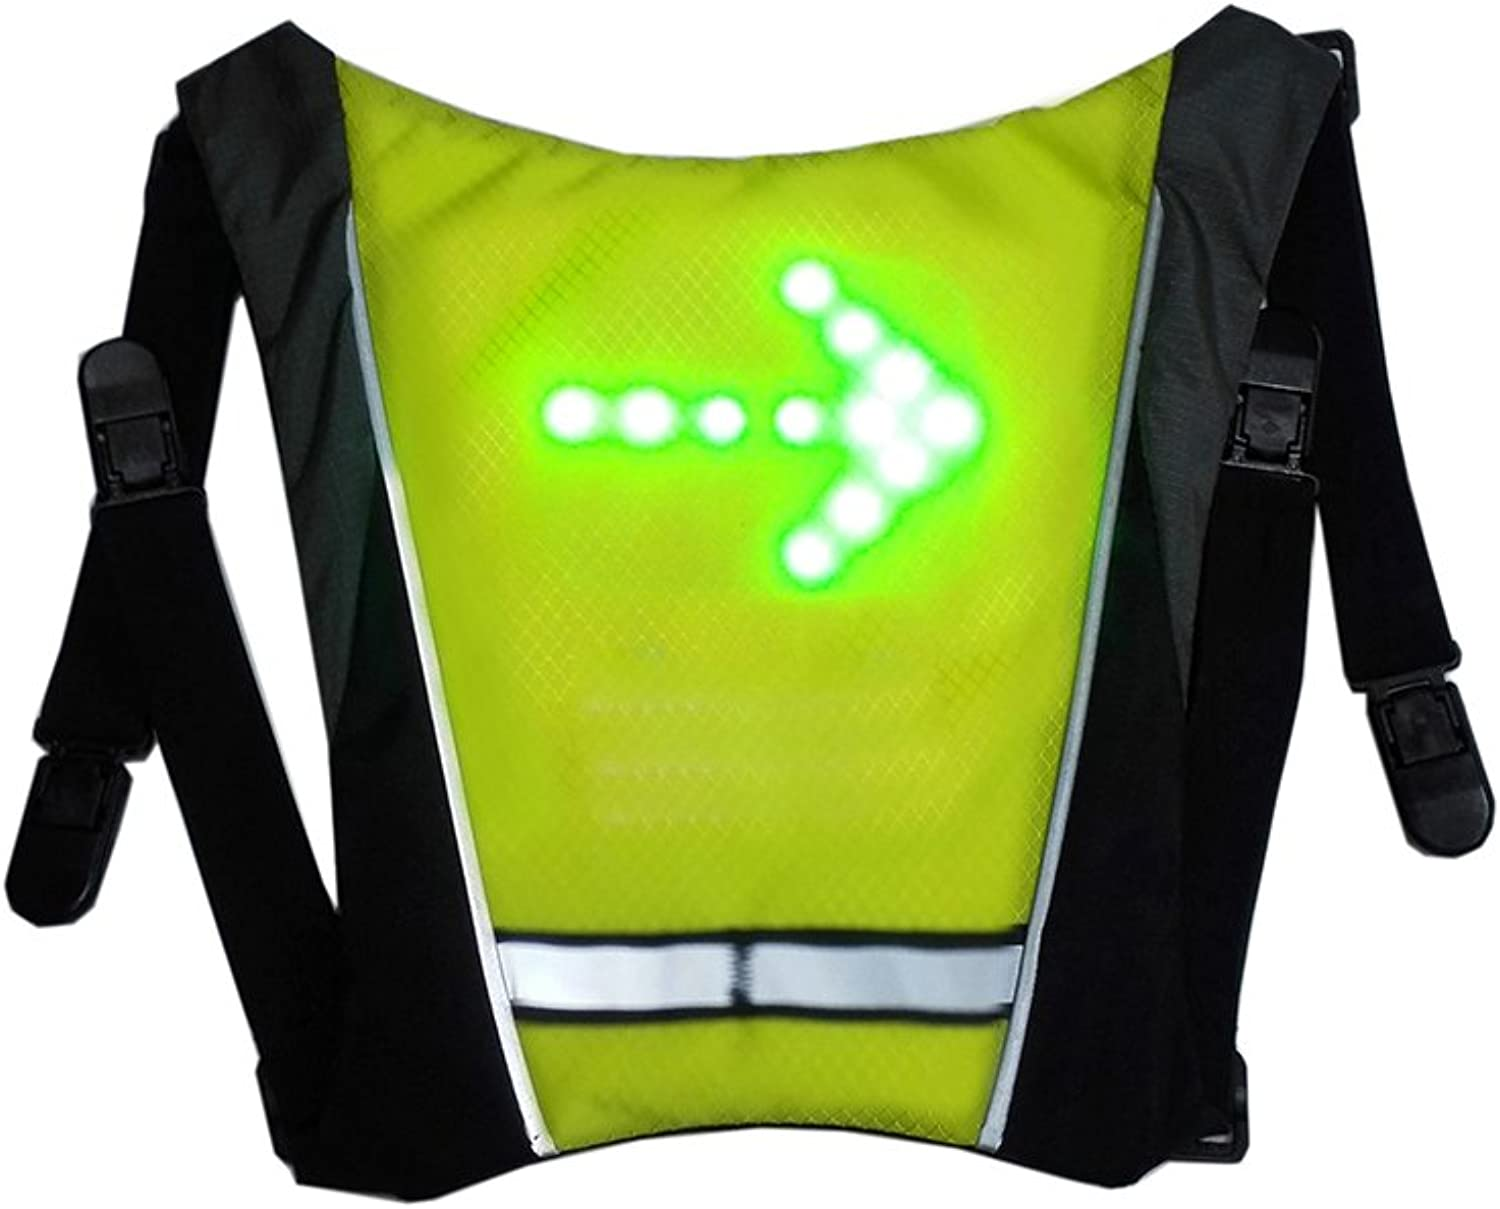 Backpack Warning Wireless Remote Control LED Running for Jogging Biking Camping Hiking Running Backpack Mini Accessory Luminous